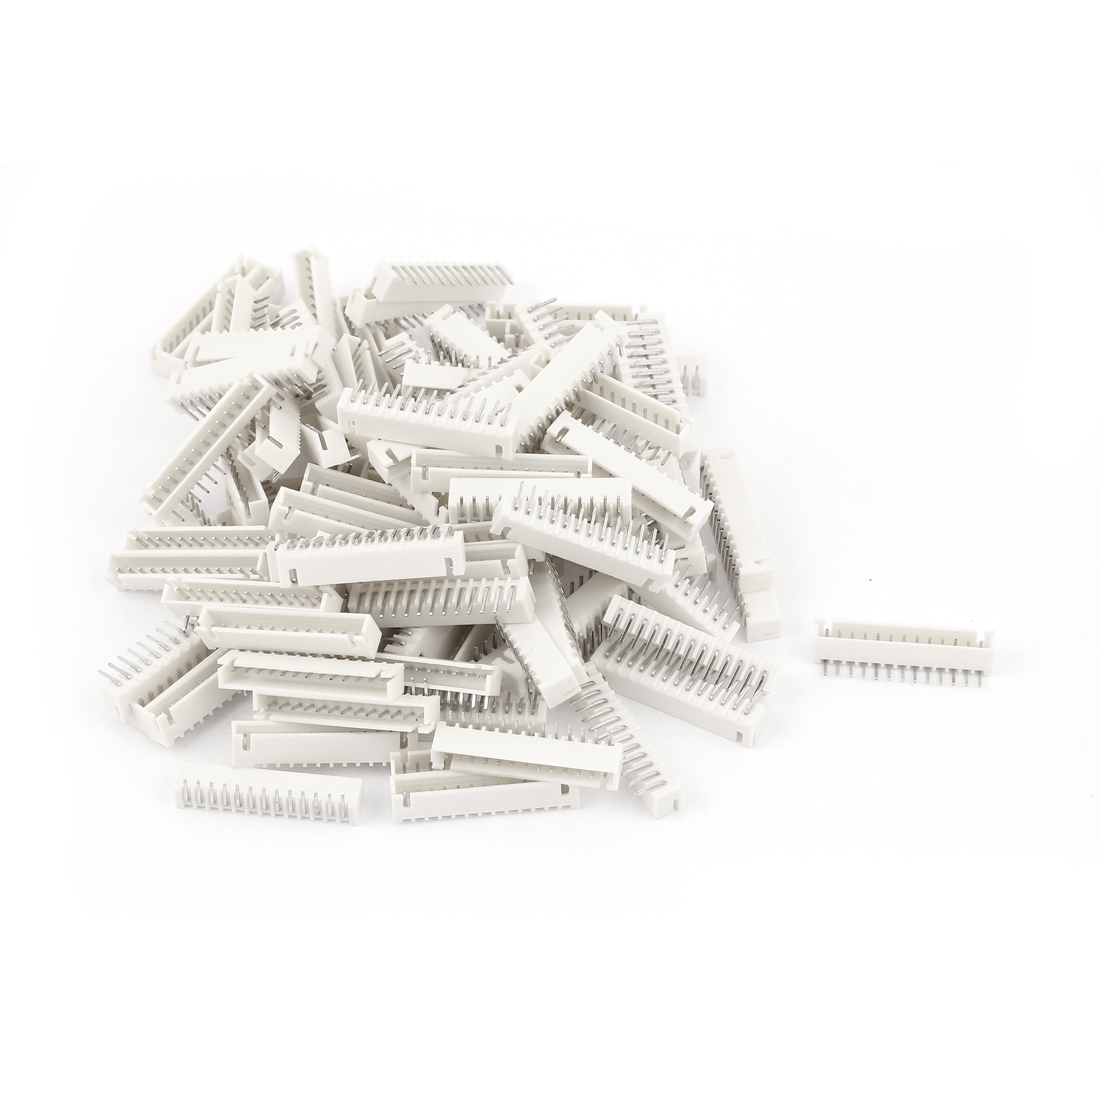 100pcs 2.54mm Pitch Right Angle Male 13 Pins XH Header Socket JST Connector